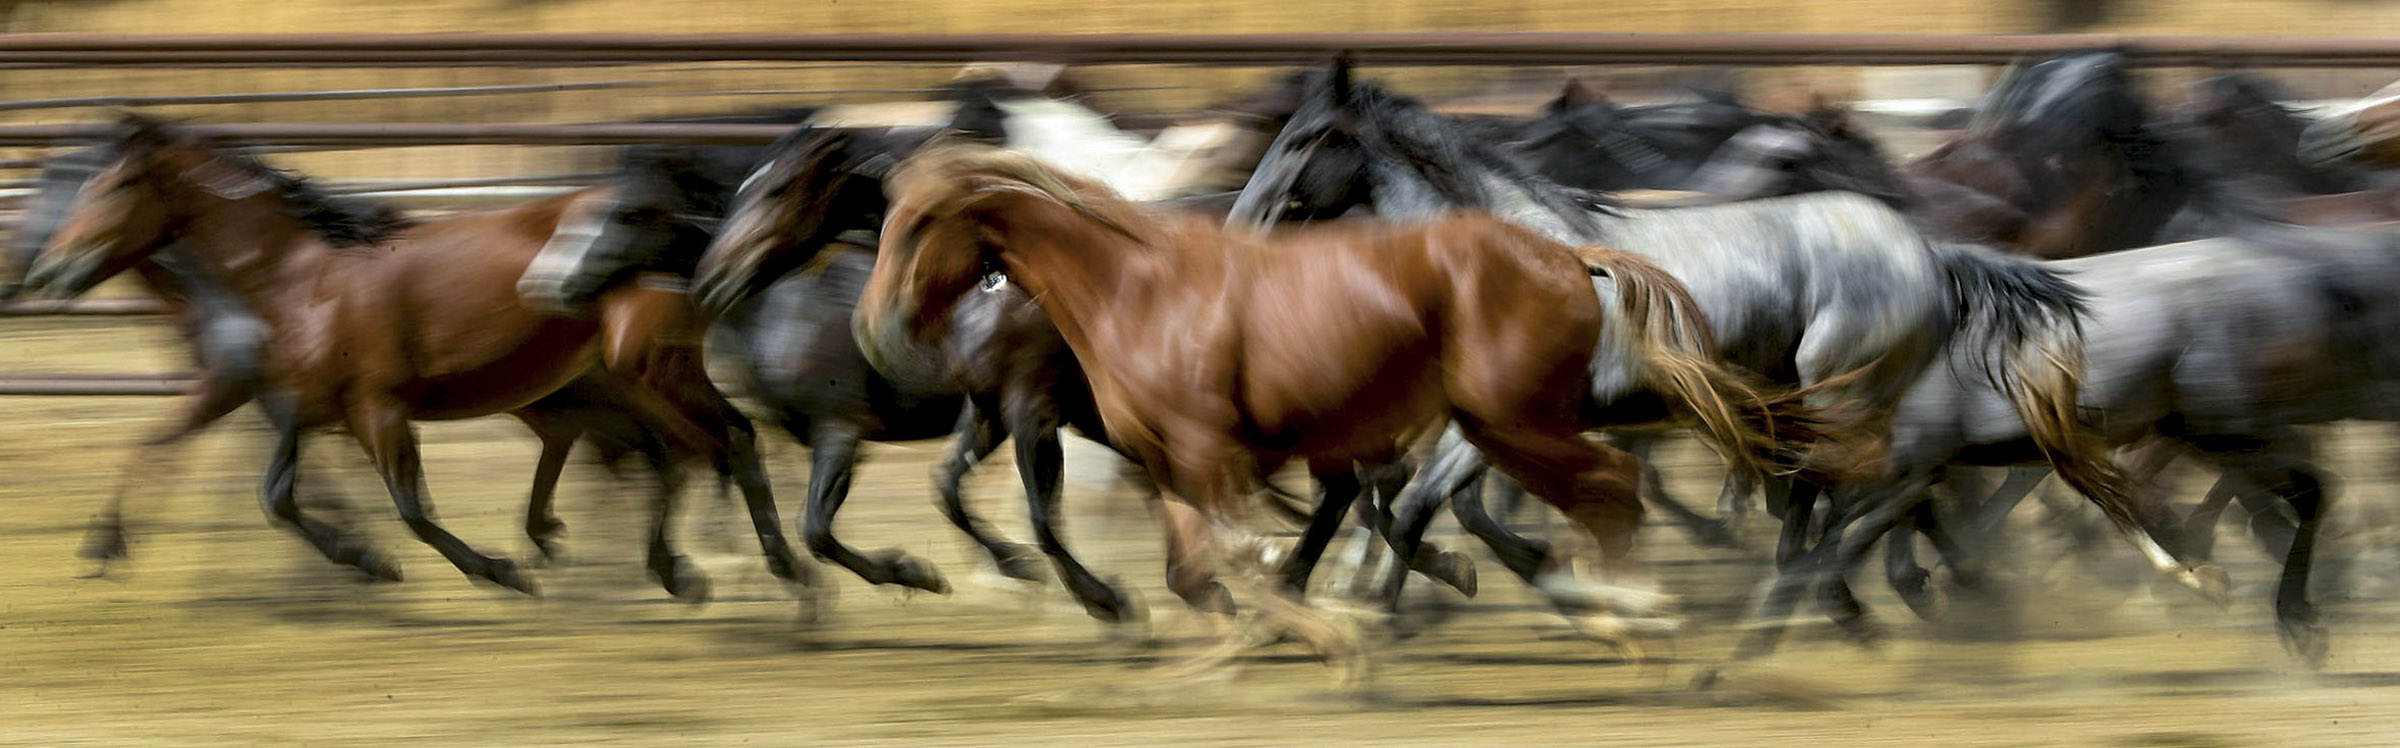 Wild horses run together at the Axtell contract off-range corrals in Axtell, Sanpete County, on Thursday, Sept. 5, 2019. The Axtell facility is one of two locations in Utah that provides care to wild horses removed from the range.